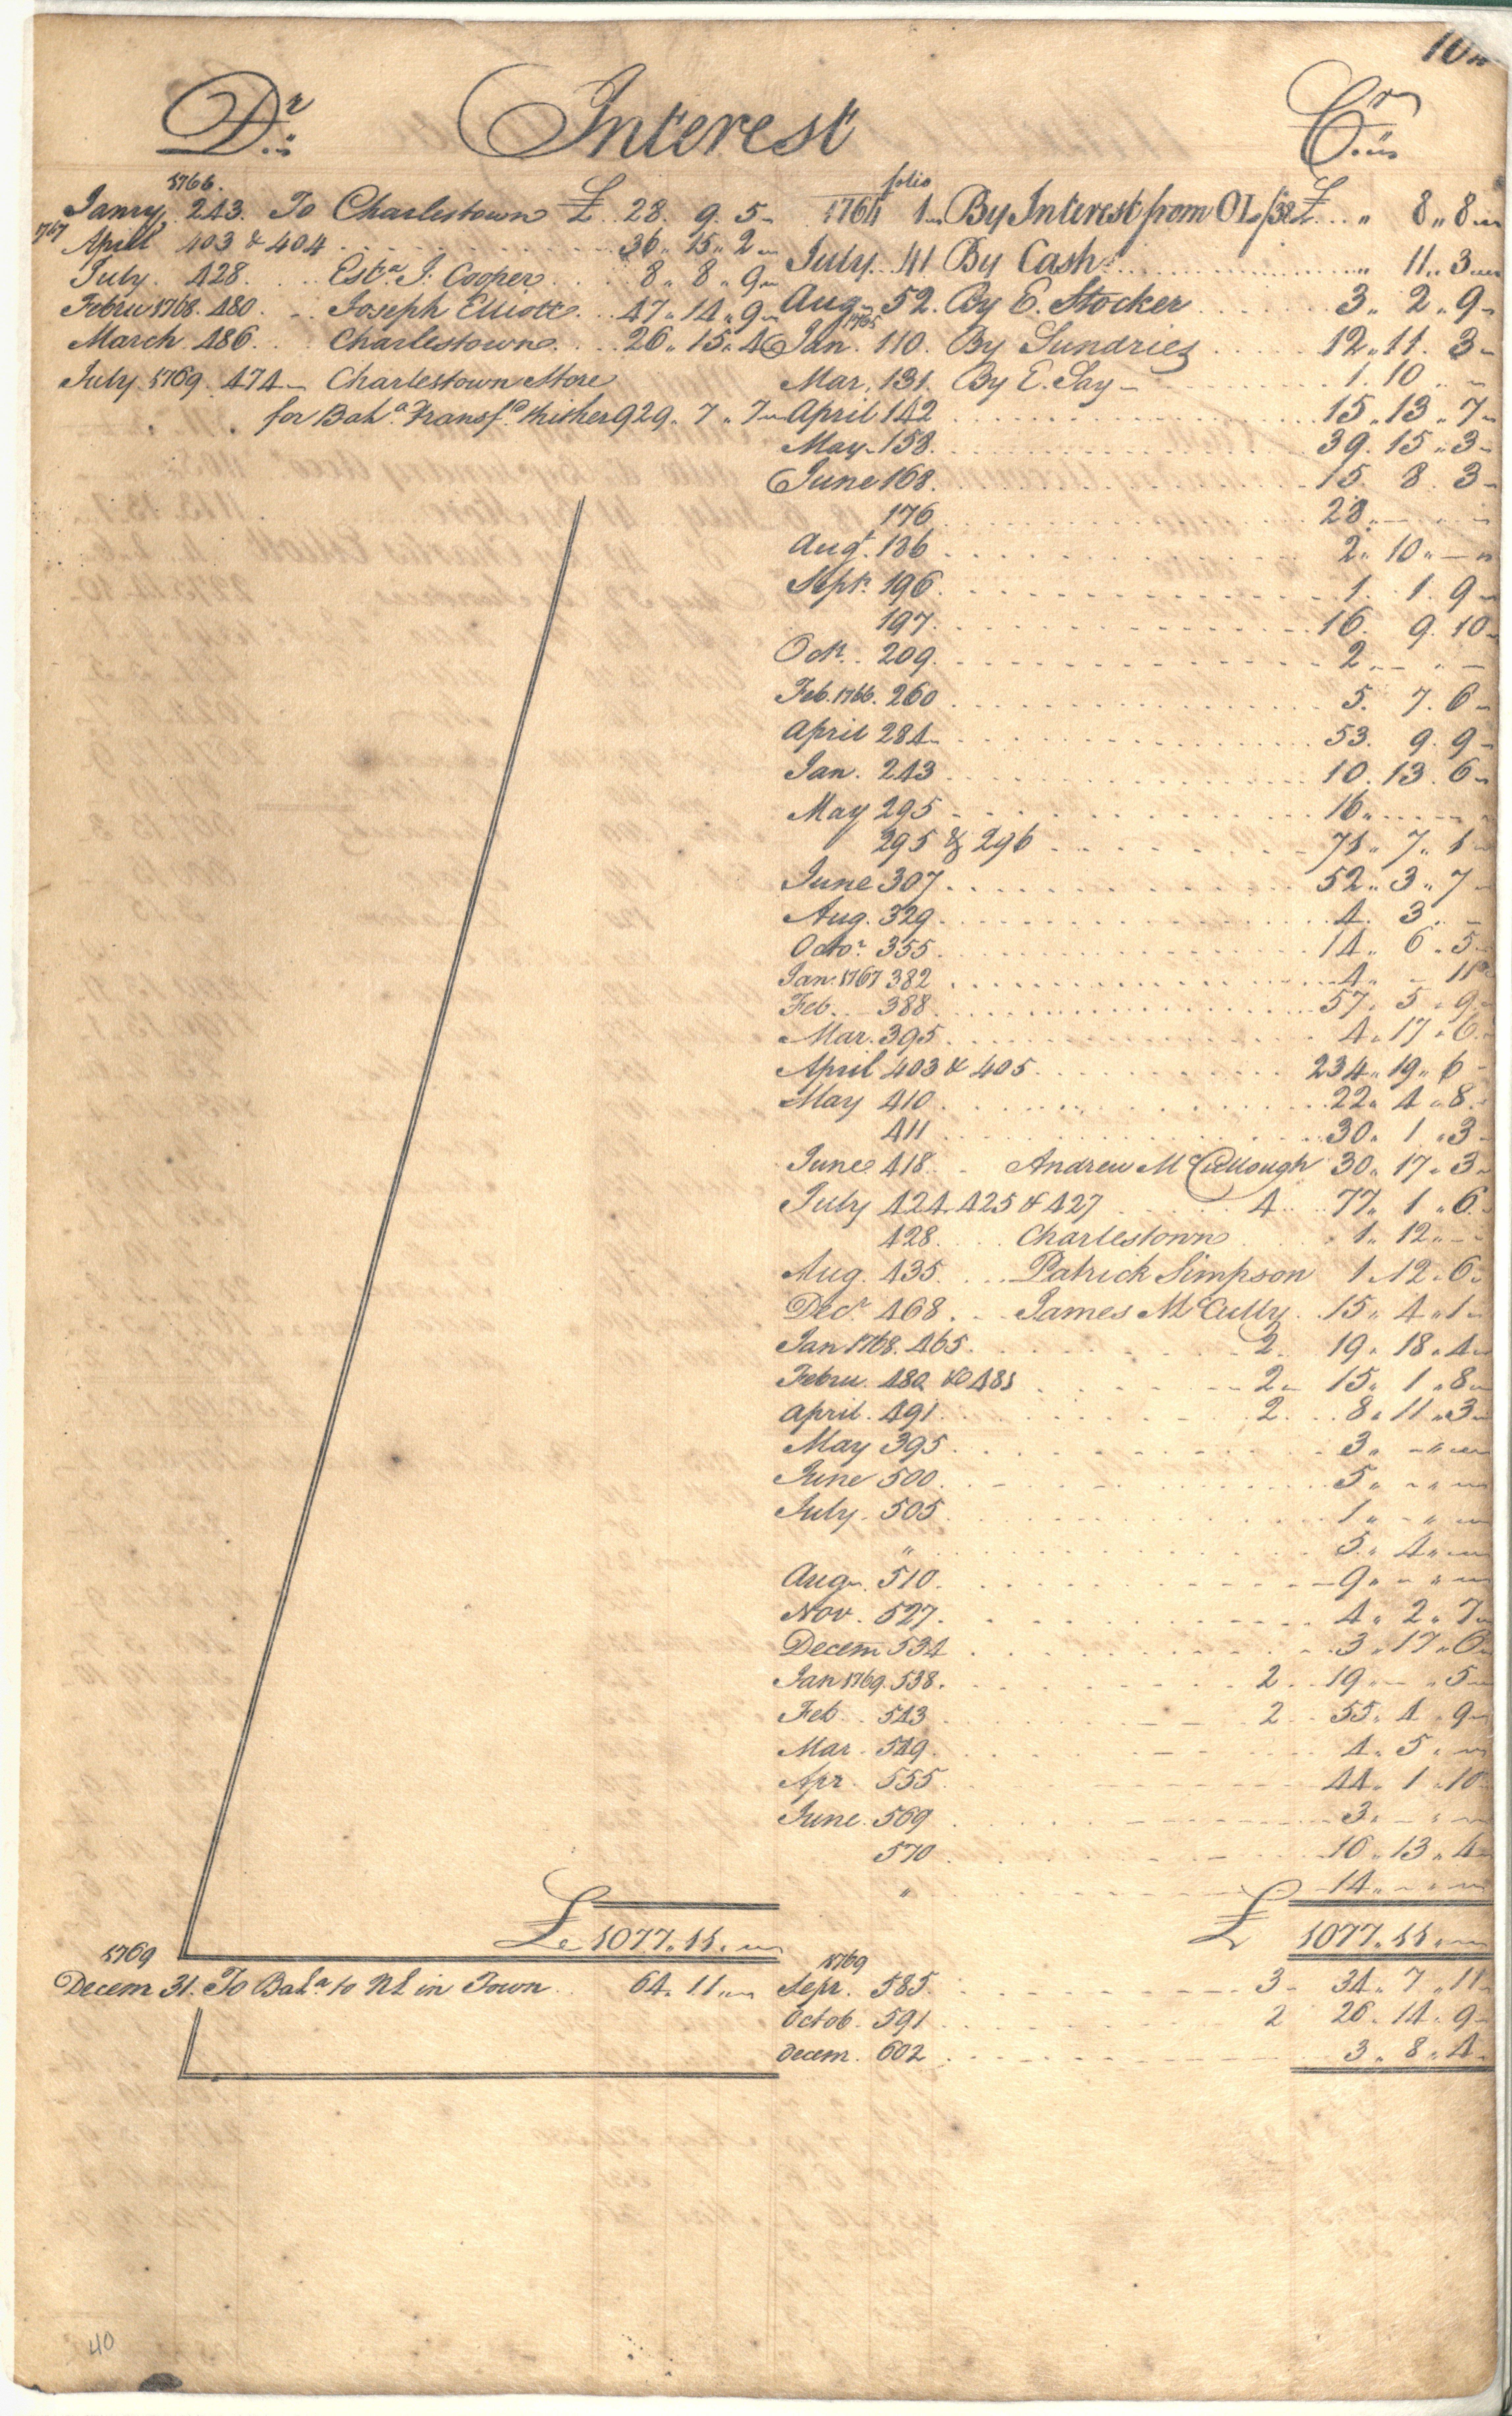 Plowden Weston's Business Ledger, page 104